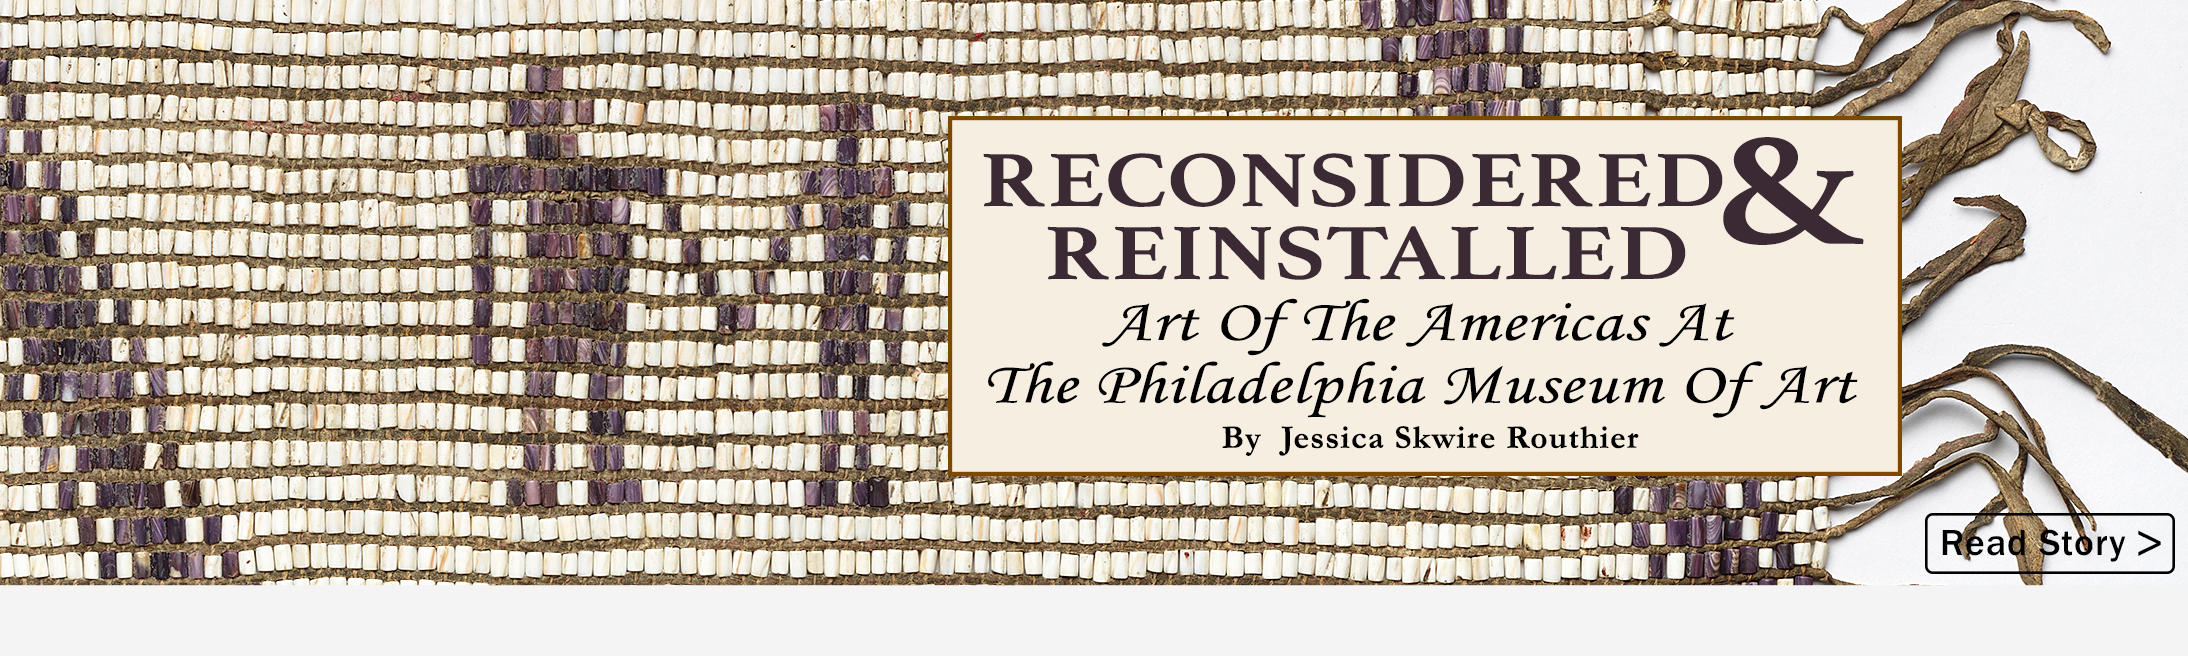 Reconsidered & Reinstalled: Art Of The Americas At The Philadelphia Museum Of Art